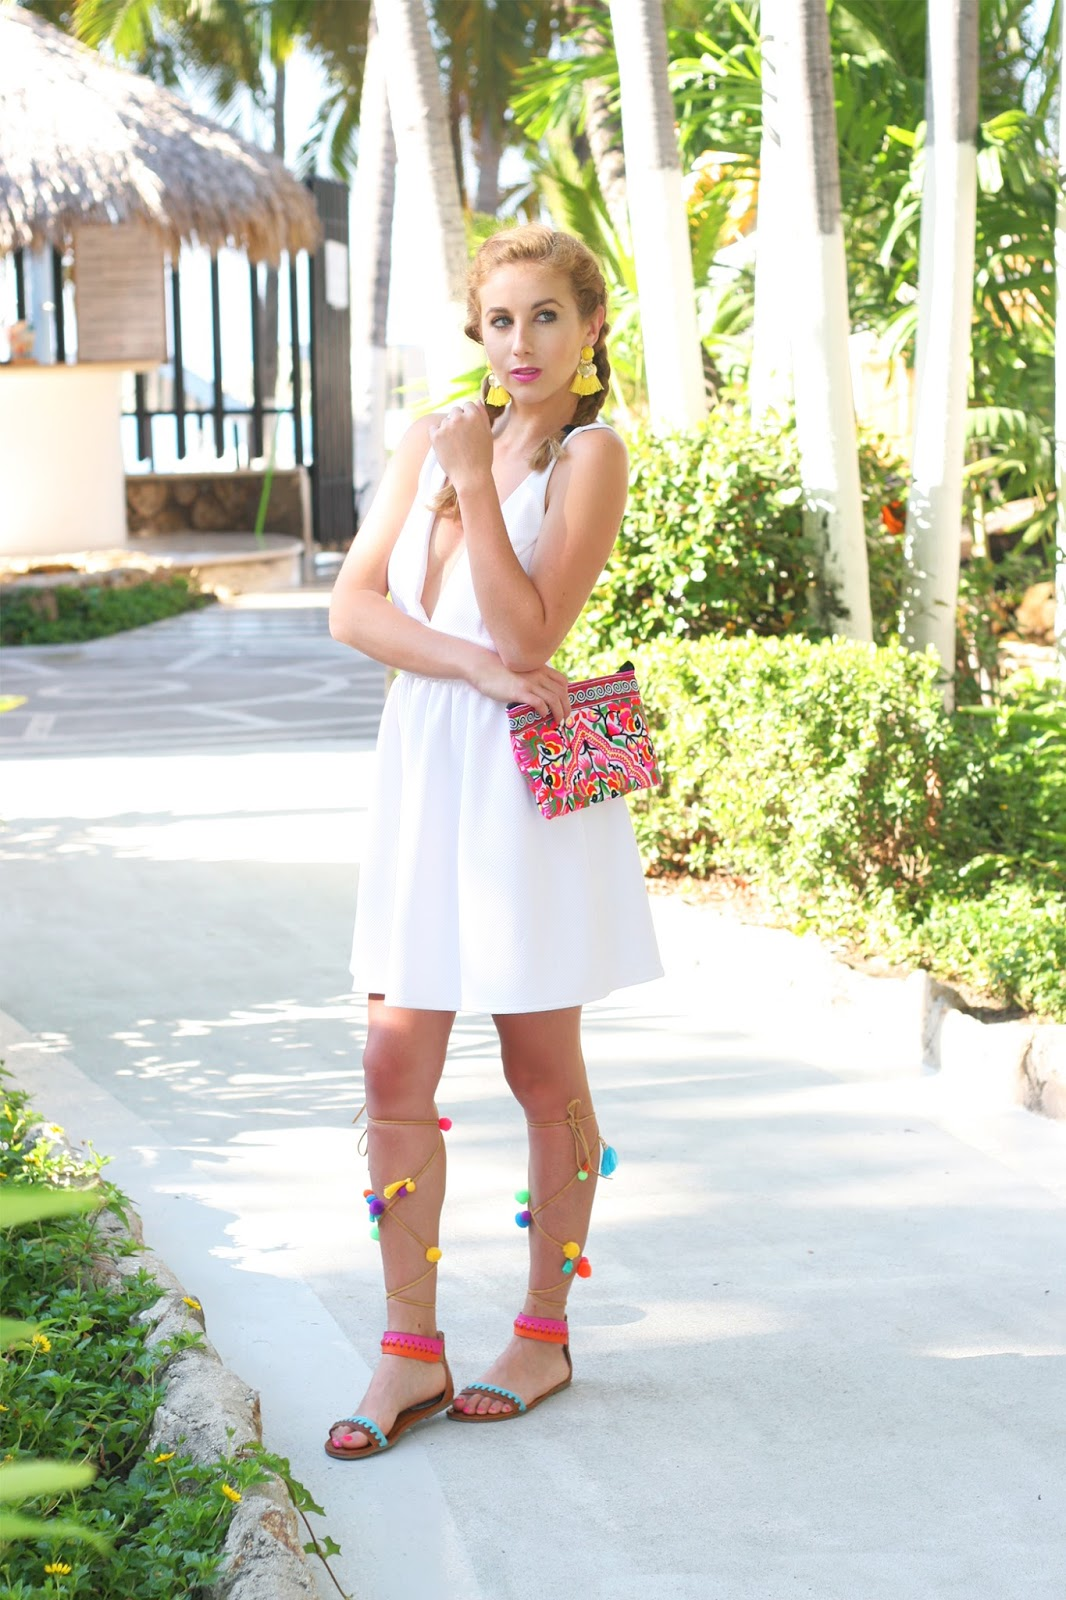 Sara-kate-styling-Steadman-frill-clothing-nc-blogger-shark-tank-collaboration